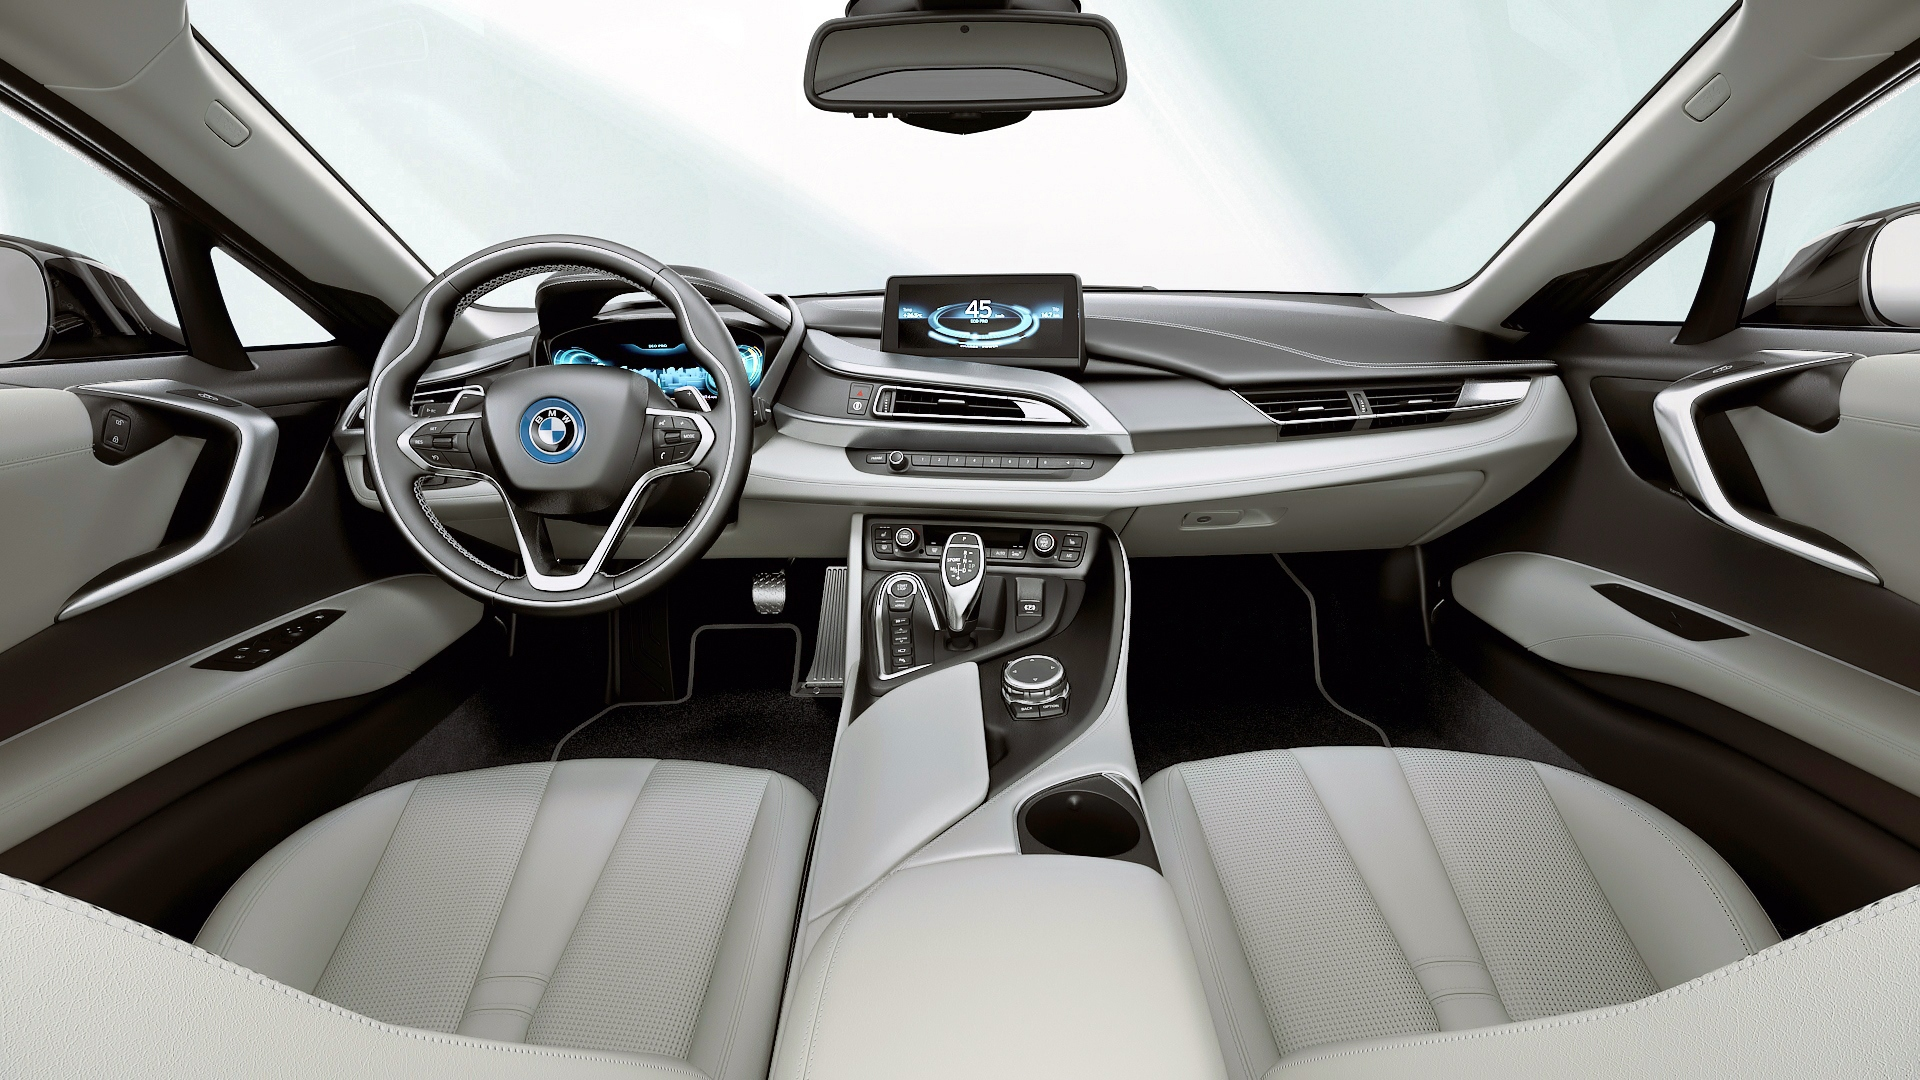 Bmw I8 Interior. first look bmw i3 and i8 electric concept cars bmw ...